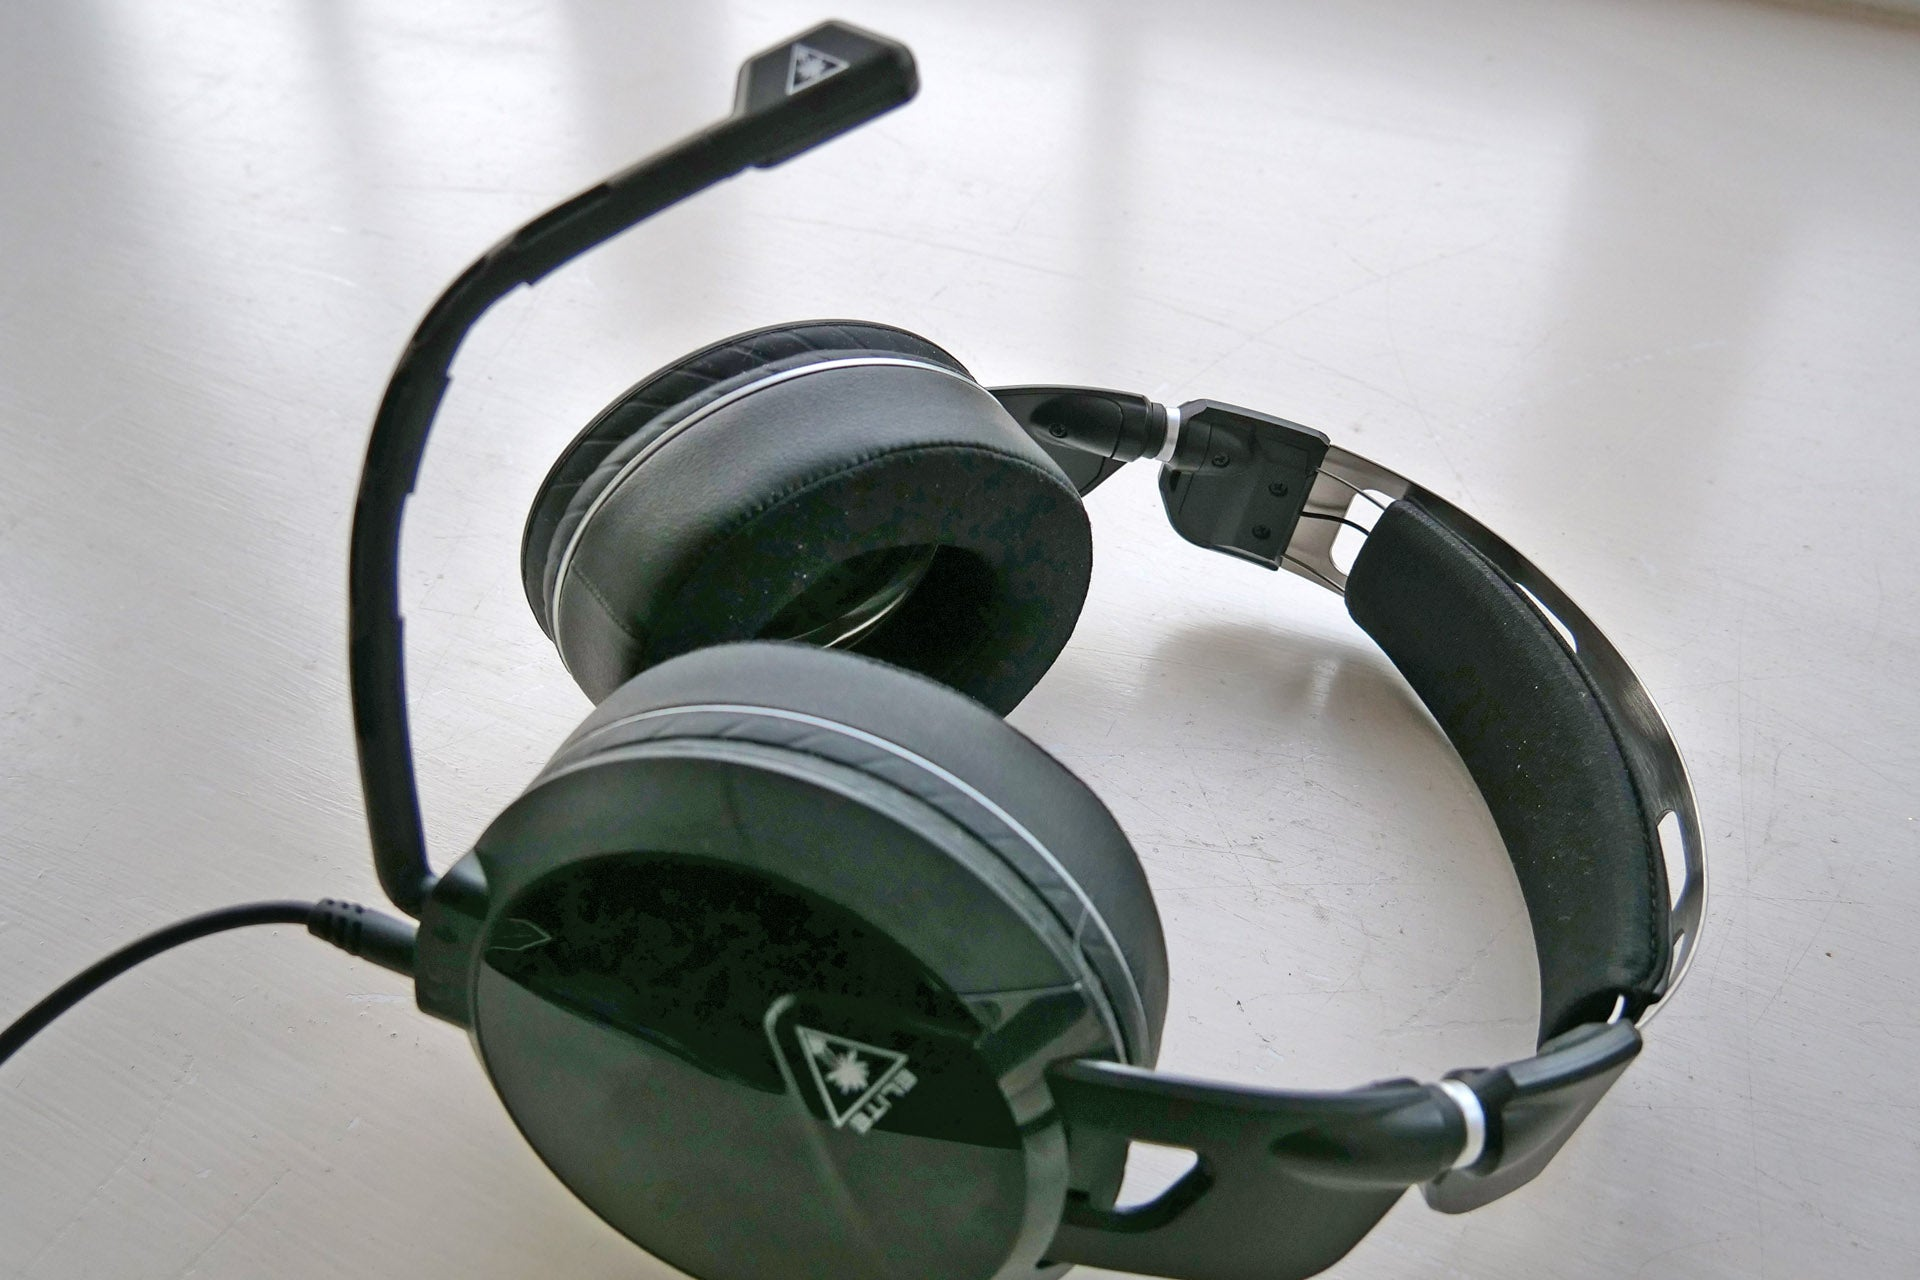 d2b8468f664 Turtle Beach Elite Pro 2 Review | Trusted Reviews